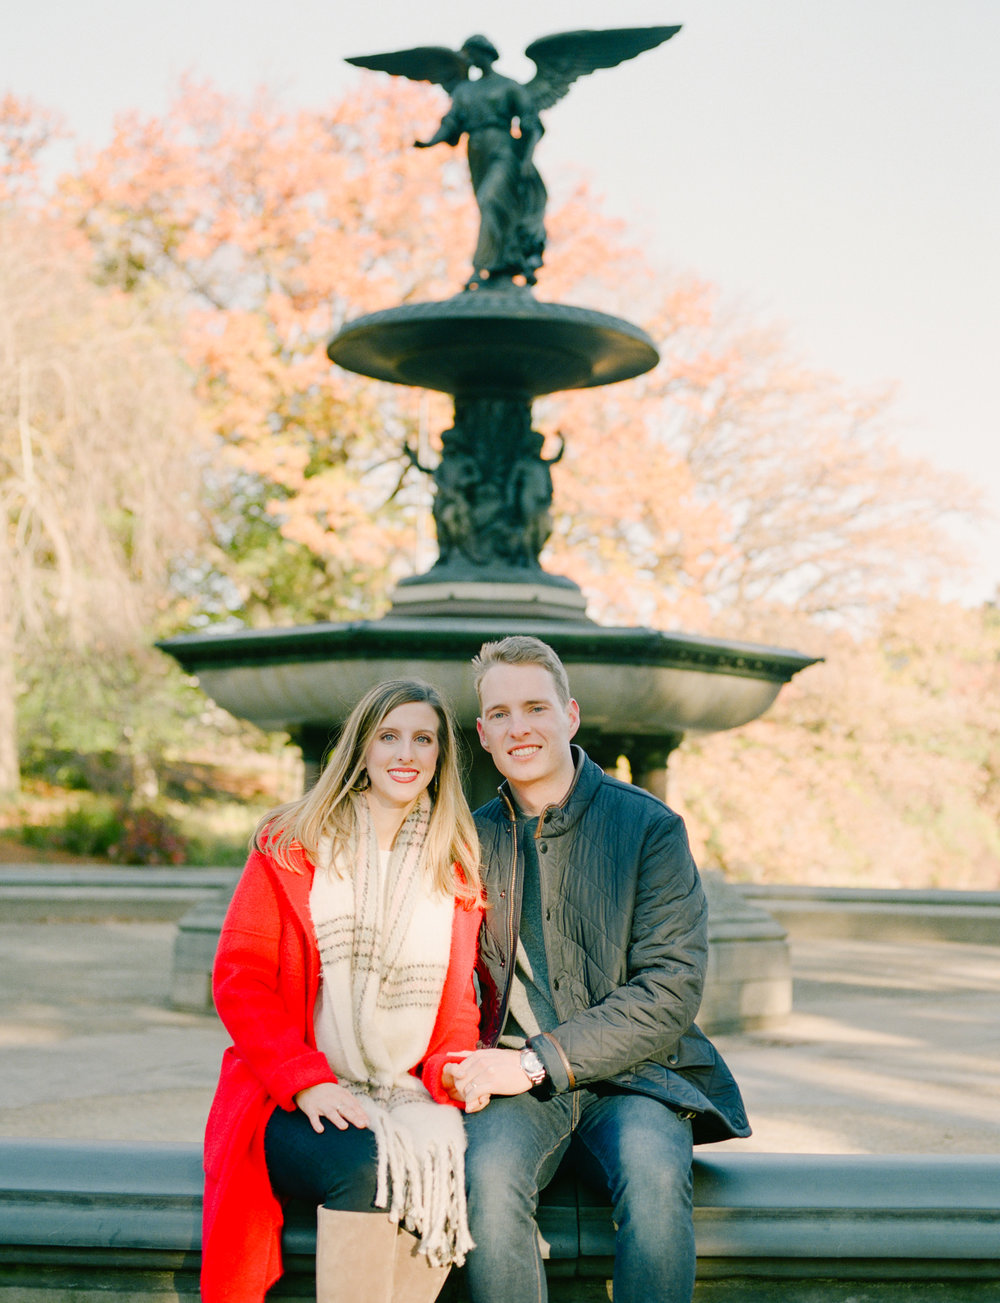 Central-park-fall-engagement-session-by Tanya Isaeva-1.jpg